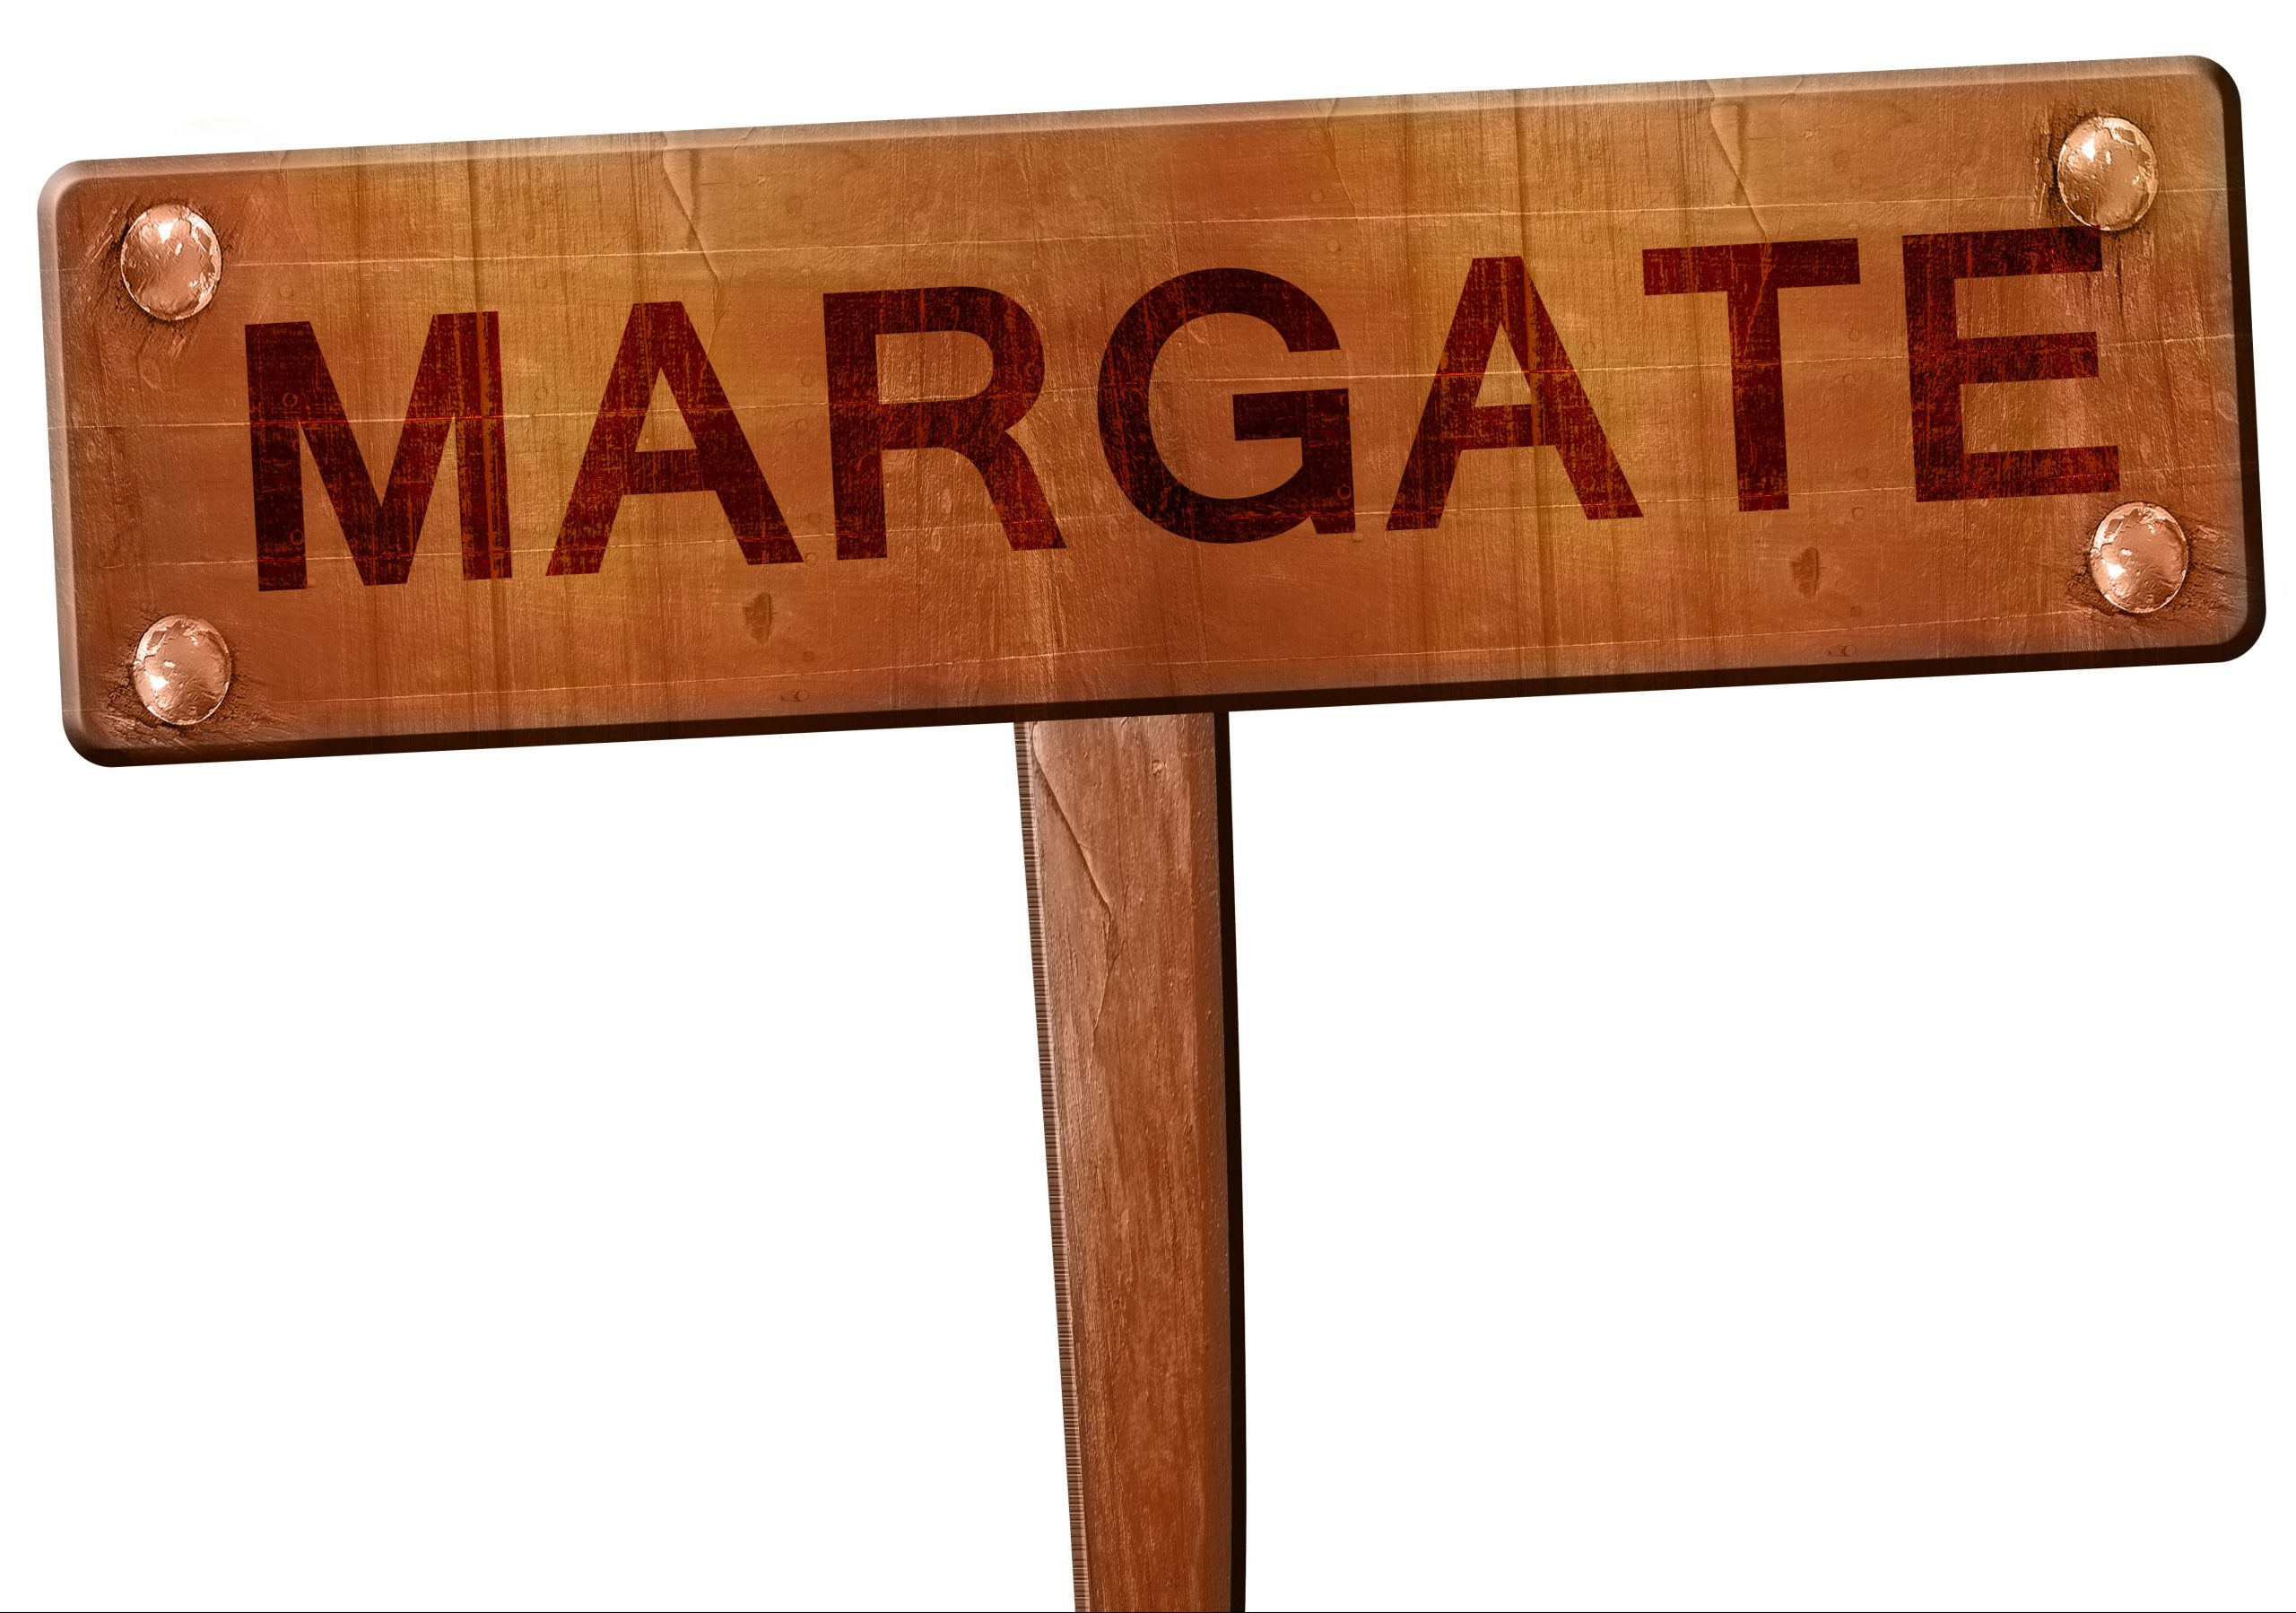 MARGATE FLORIDA FORECLOSURE DEFENSE LAWYERS